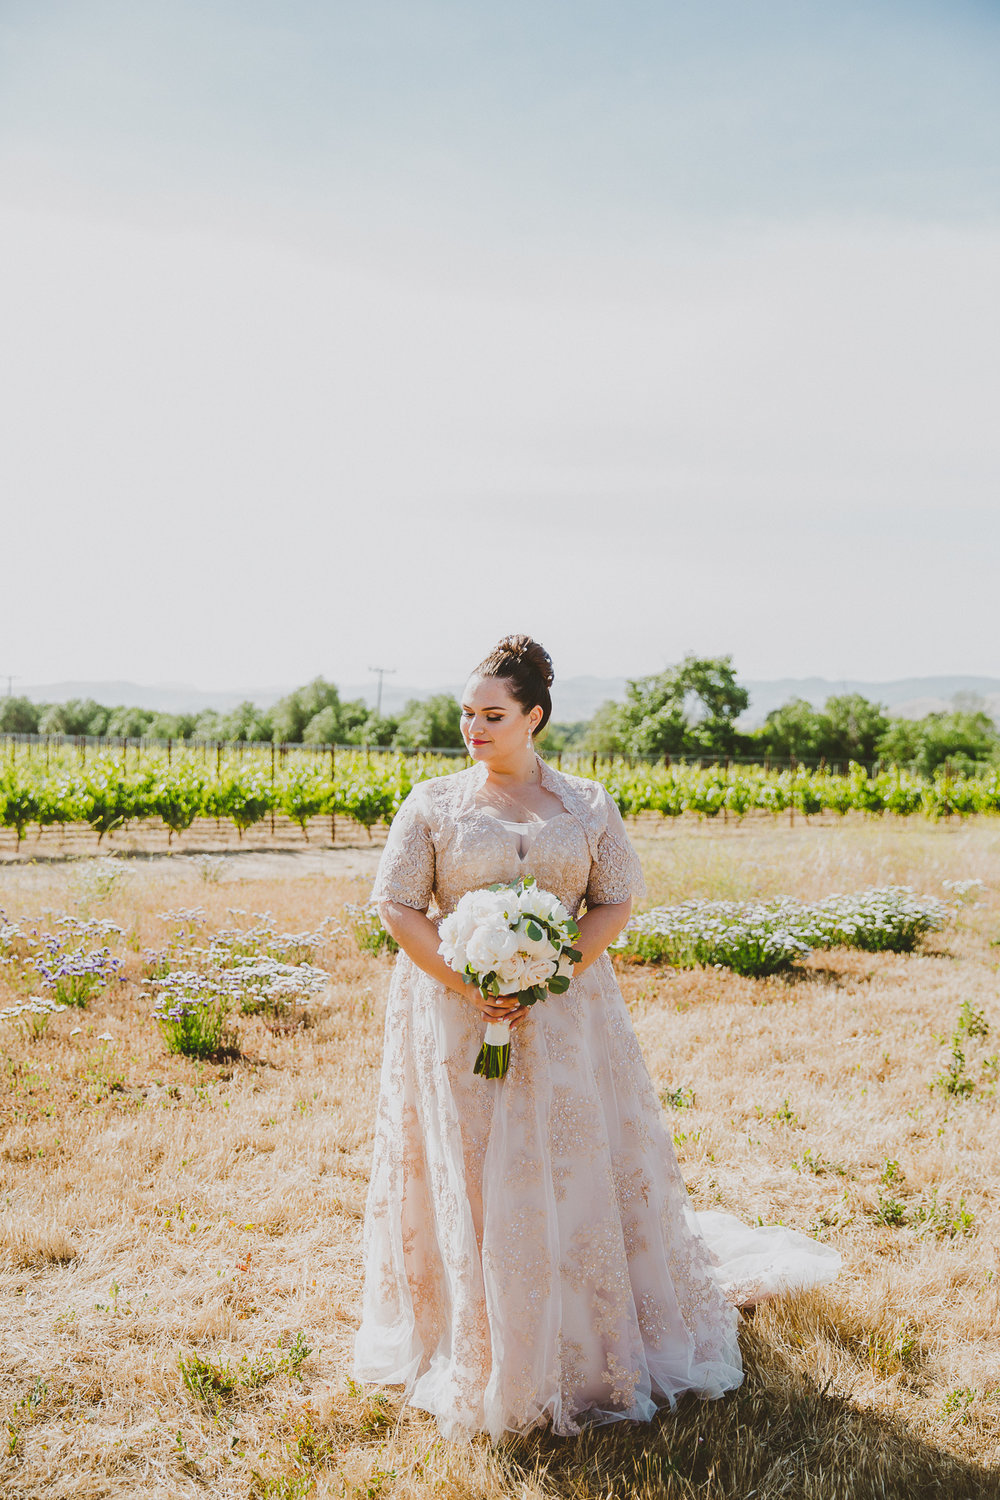 lydia-matt-lavender-oak-vineyard-kelley-raye-los-angeles-wedding-photographer-30.jpg